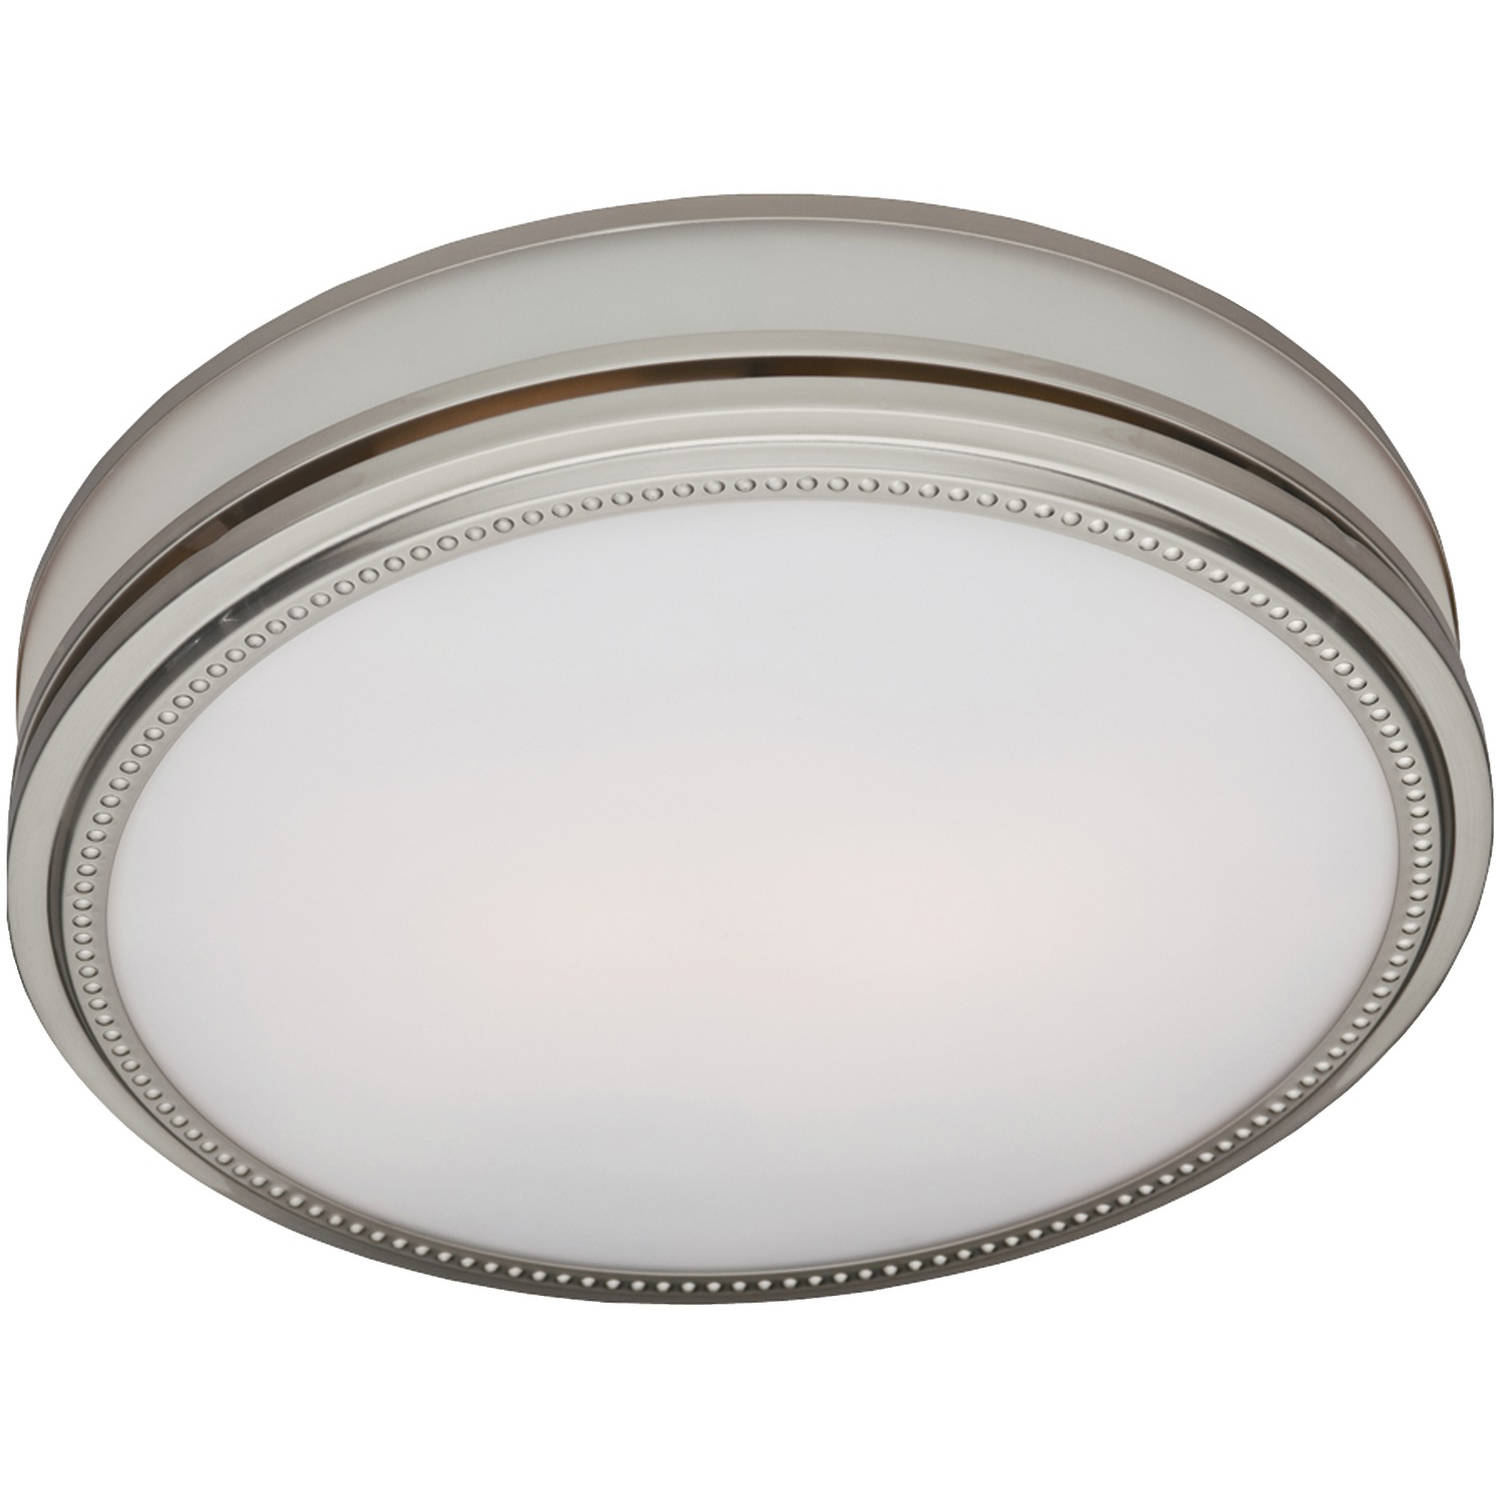 Bathroom Lights With Exhaust Fan hunter halcyon 90cfm ceiling exhaust bath fan, 81030 - walmart